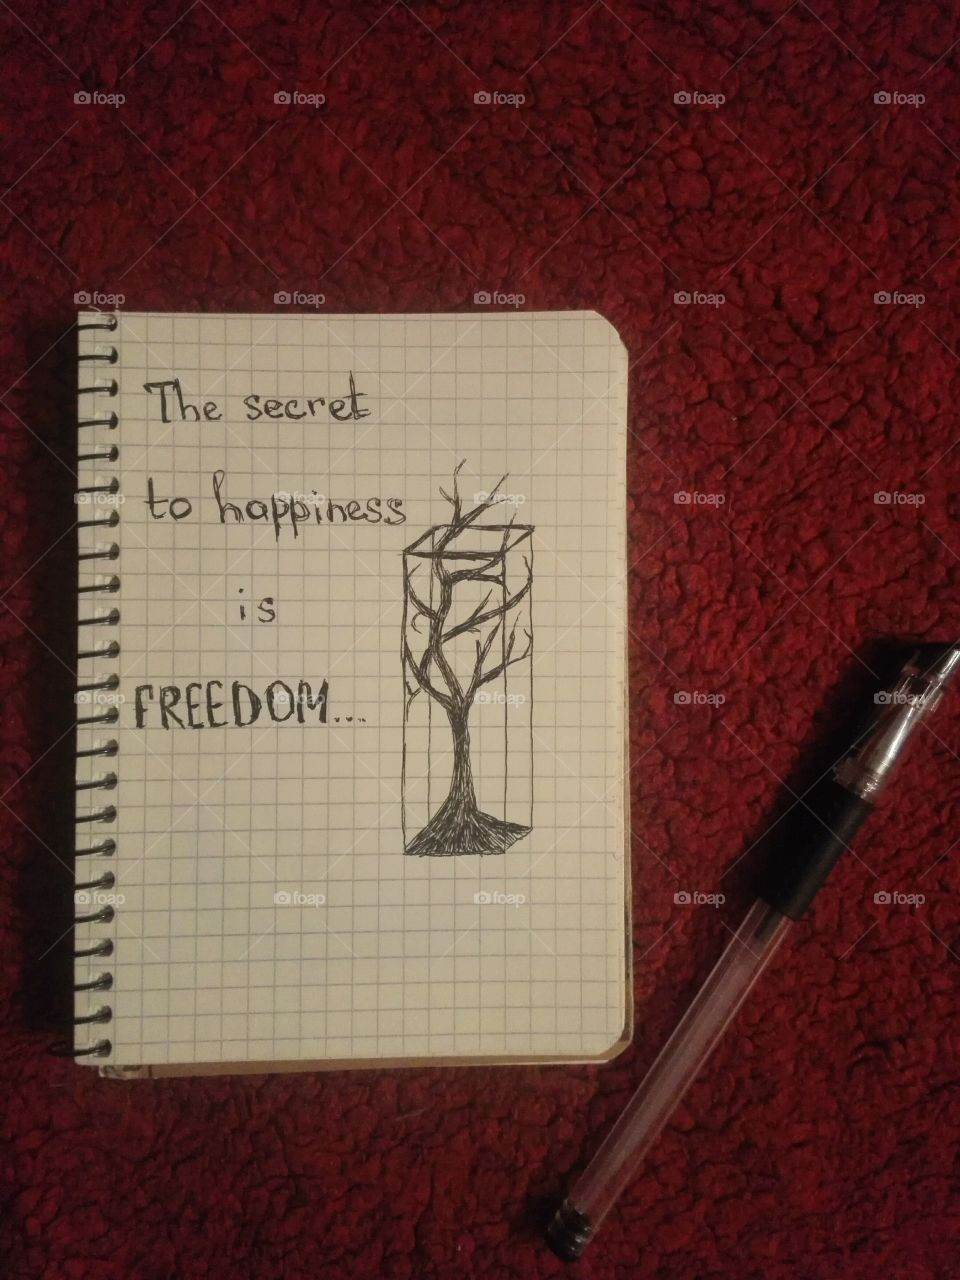 Notebook with quote about freedom and pen on red background